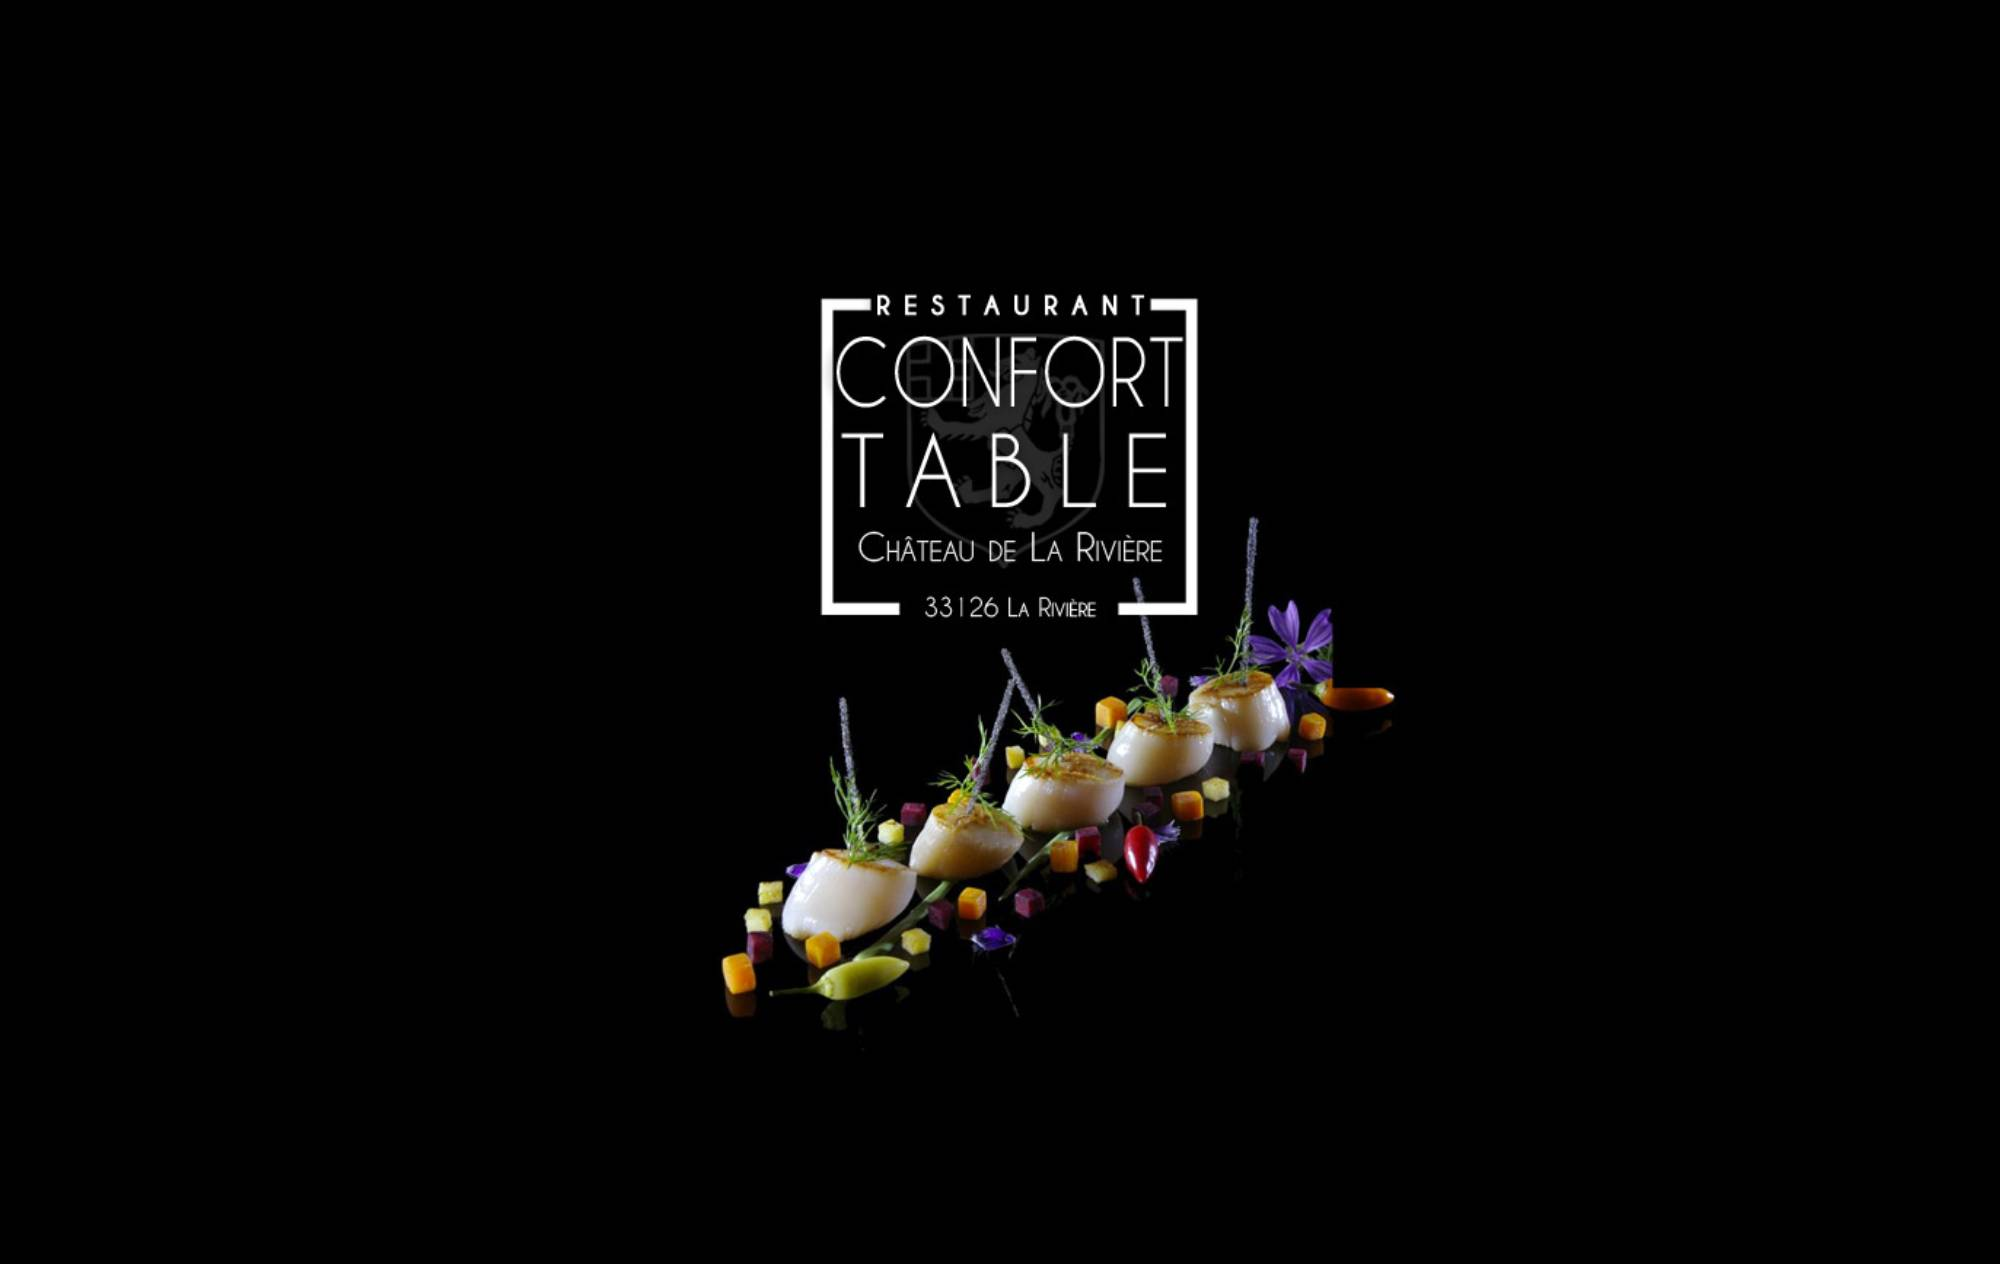 CONFORT TABLE FR